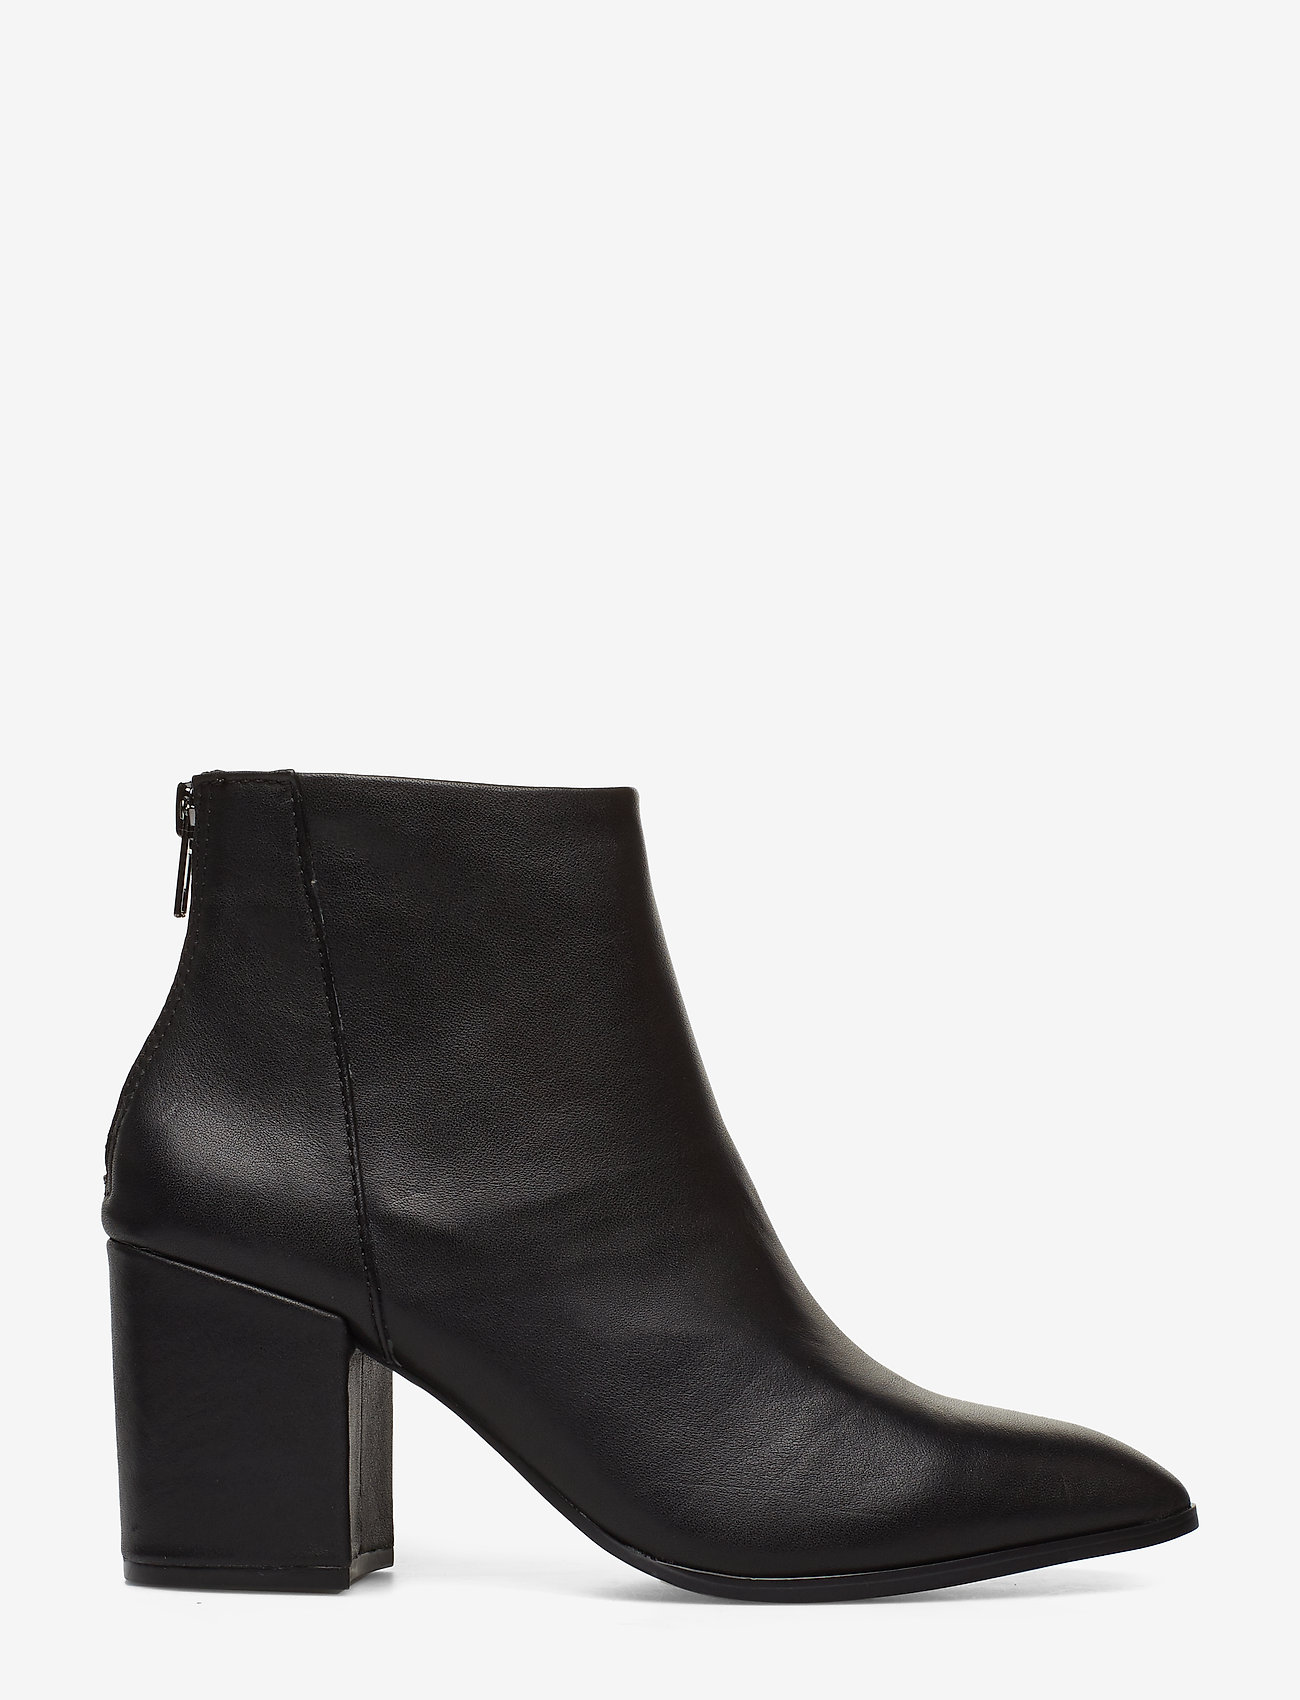 Steve Madden - Jillian - ankelboots med klack - black leather - 1